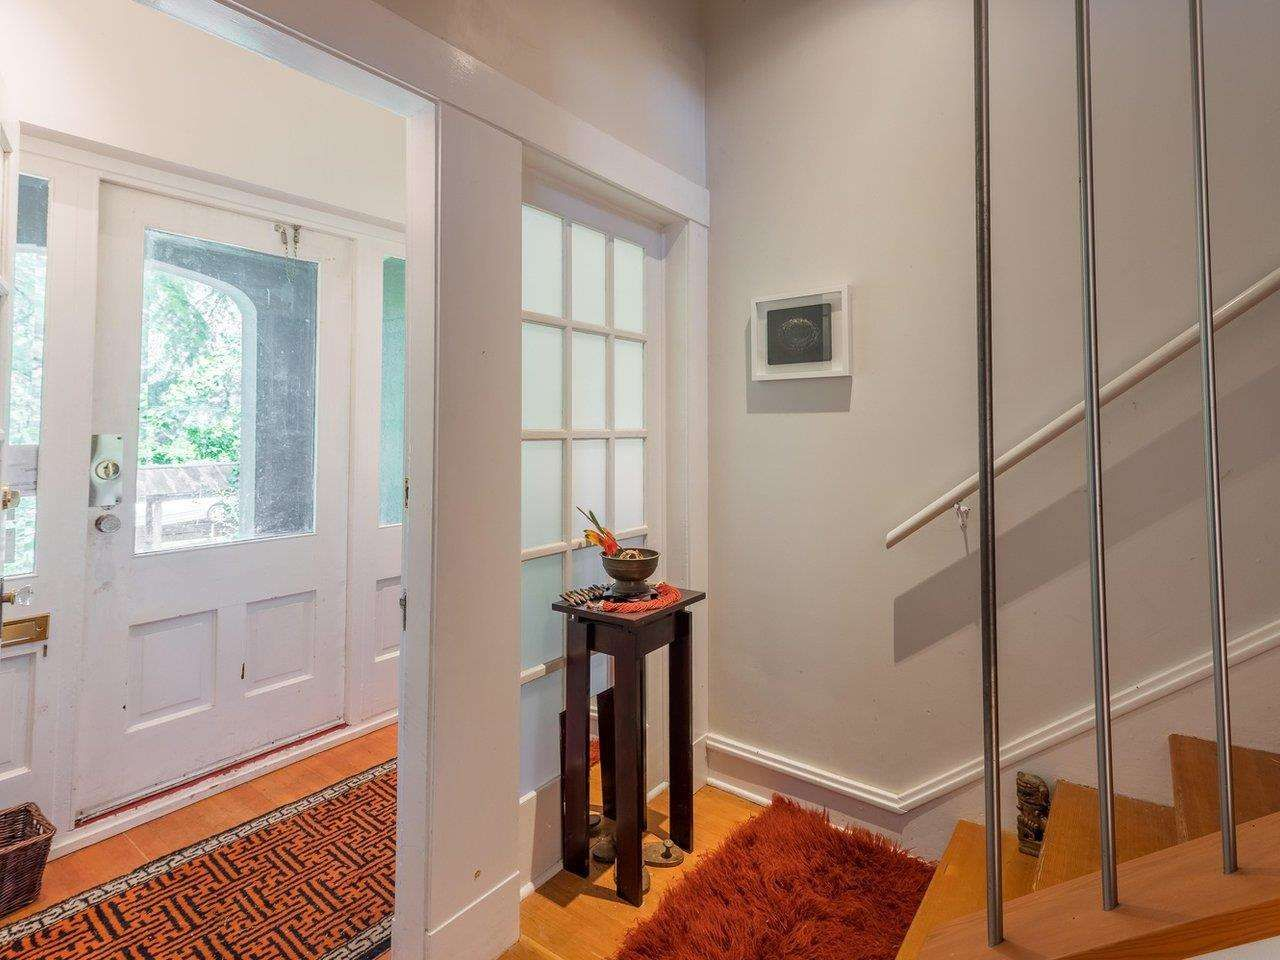 Photo 16: Photos: 2556 W 2ND Avenue in Vancouver: Kitsilano House for sale (Vancouver West)  : MLS®# R2593228